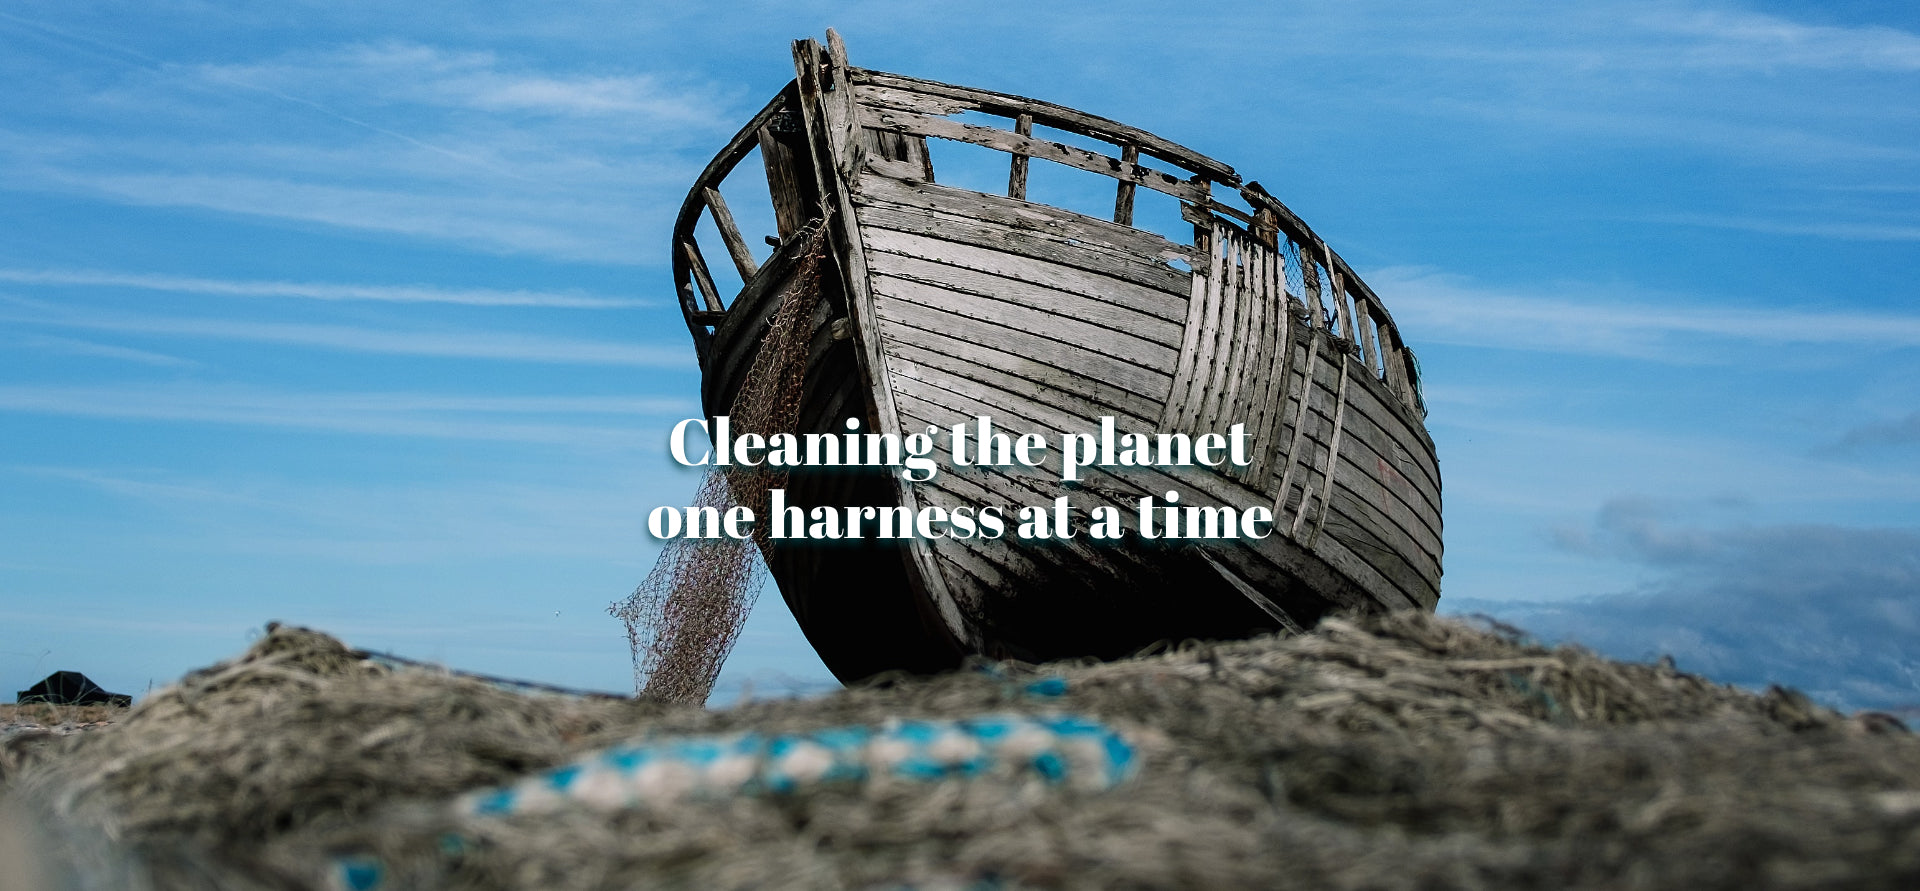 Cleaning the planet one harness at a time